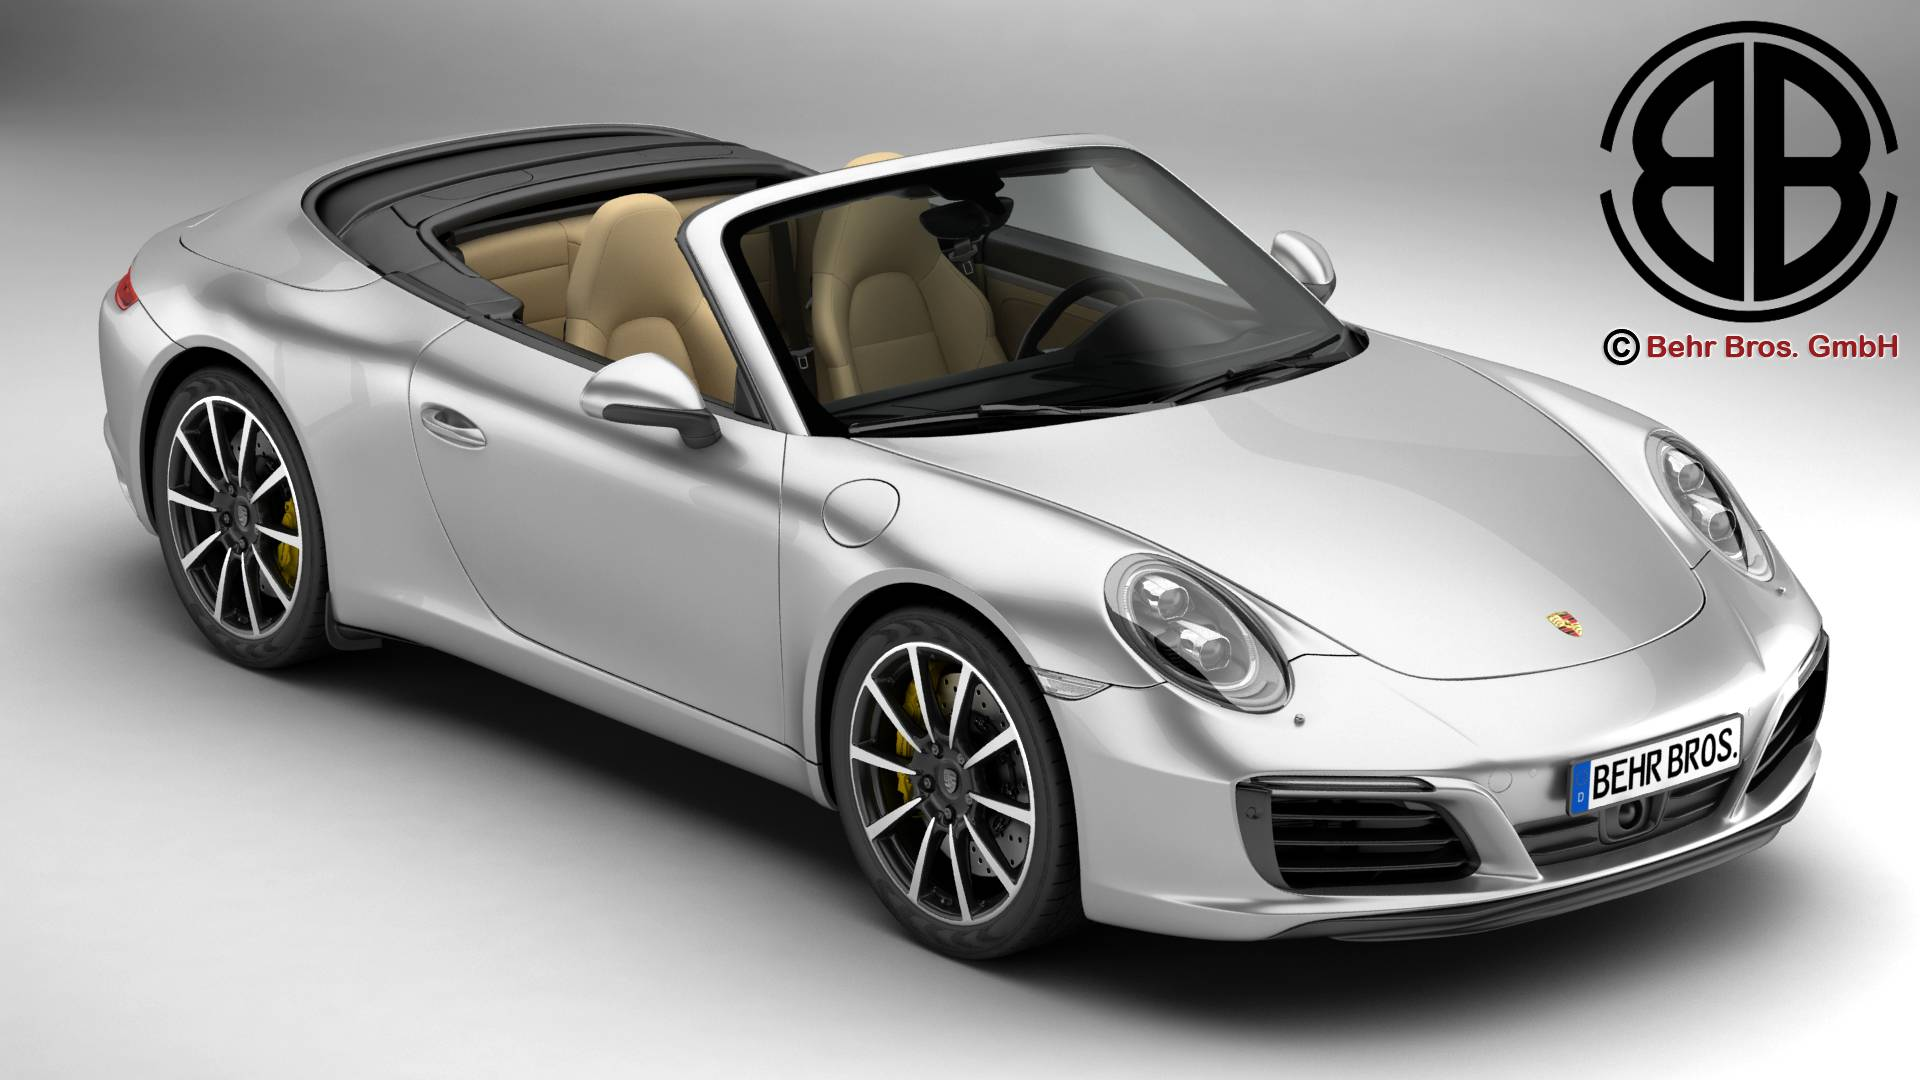 porsche 911 carrera cabriolet 2017 3d model 3ds max fbx c4d le do thoil 220788